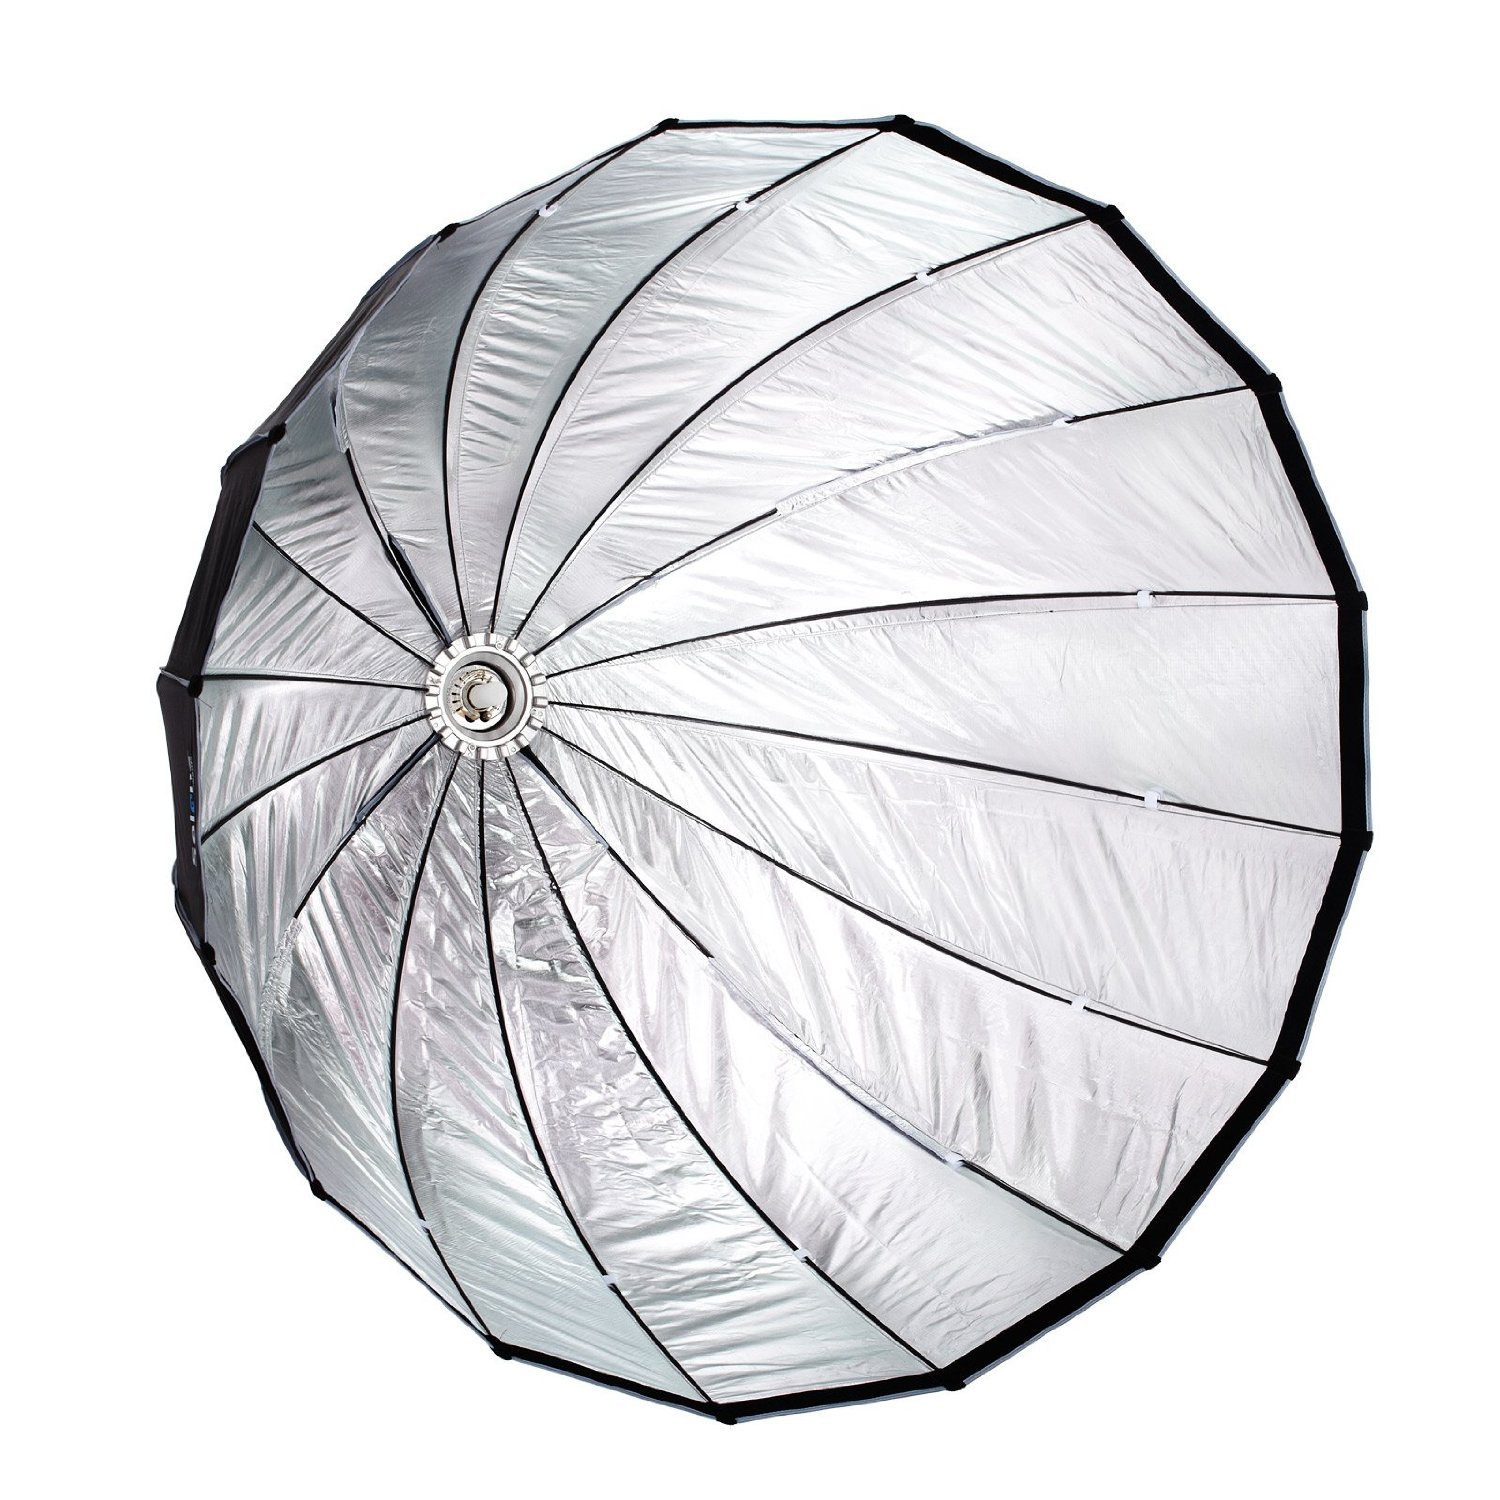 Selens Parabolic Softbox 75 inches / 190 Centimeters, Hexadecagon Deep Portable and Quick Folding Softbox Diffuser with Bowen Mounts for Studio Light and Speedlite Flash by Selens (Image #10)